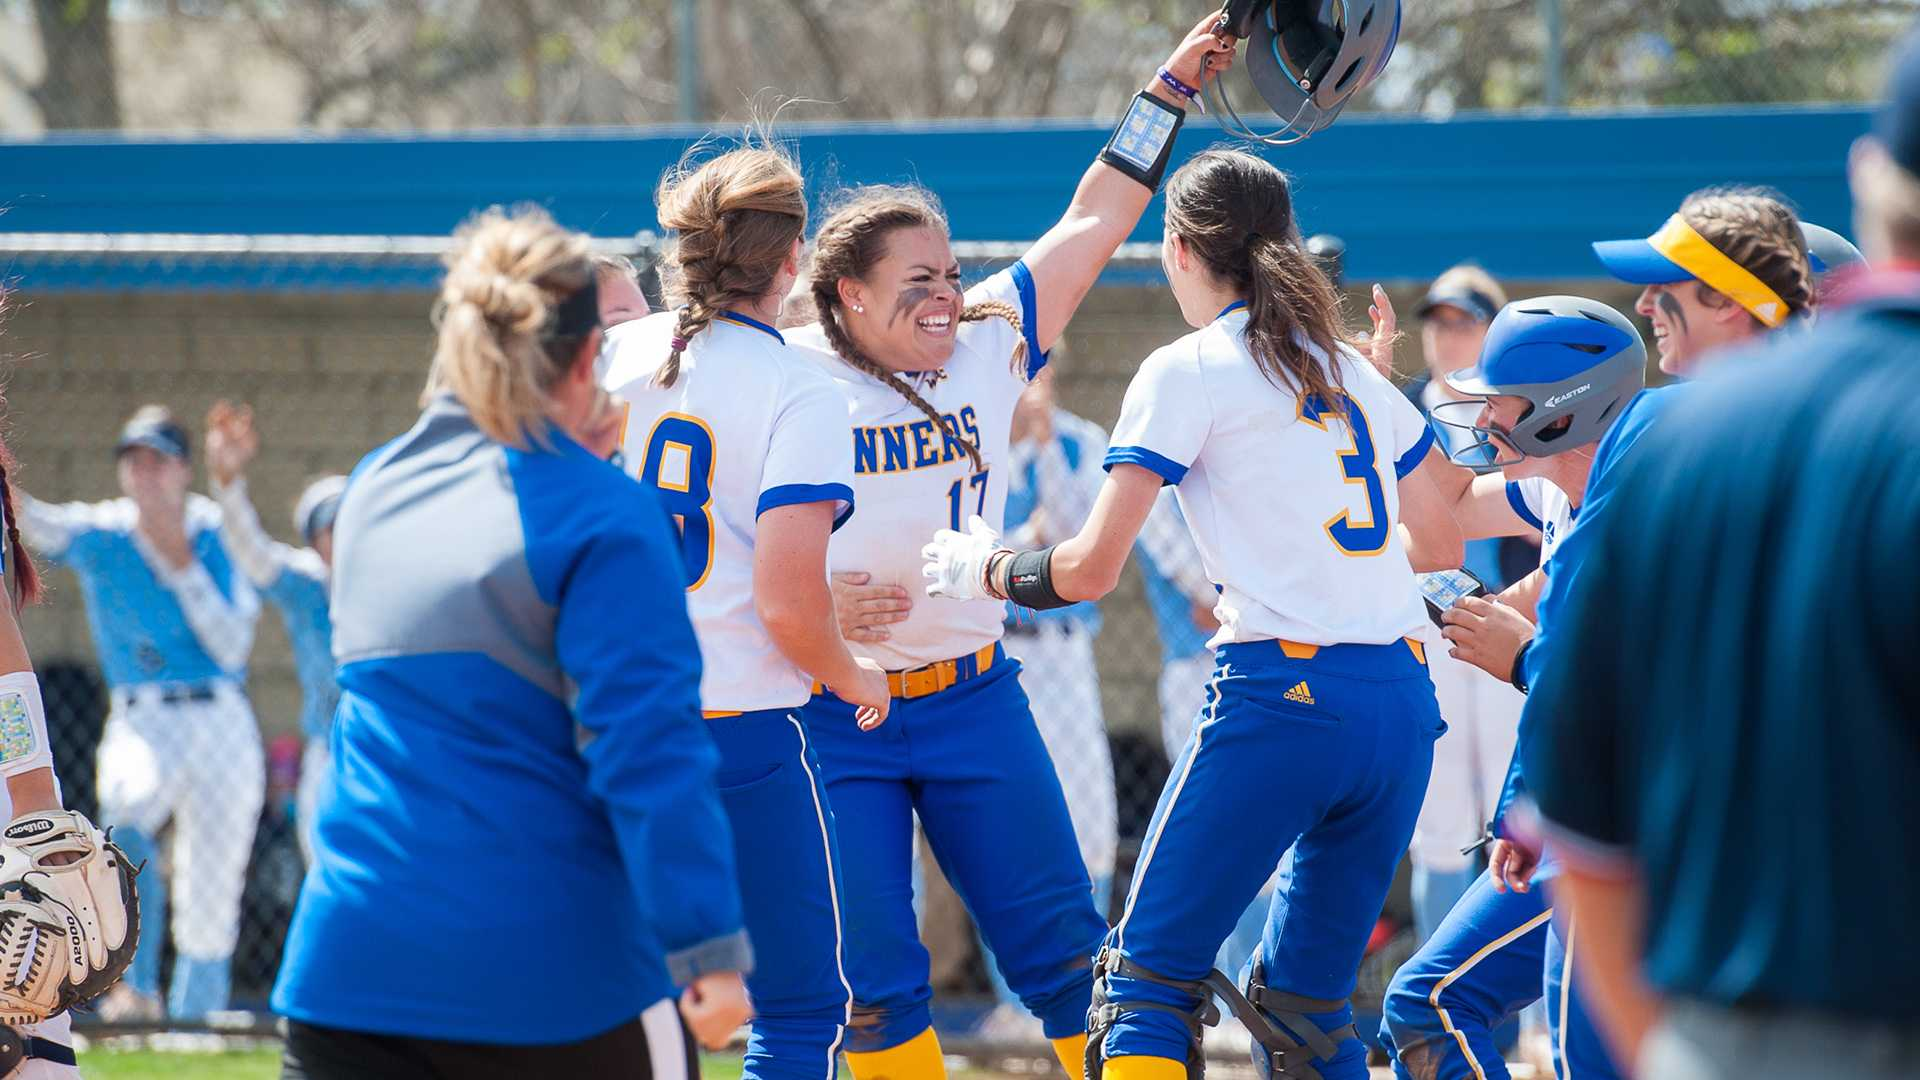 CSUB wins on walkoff hit